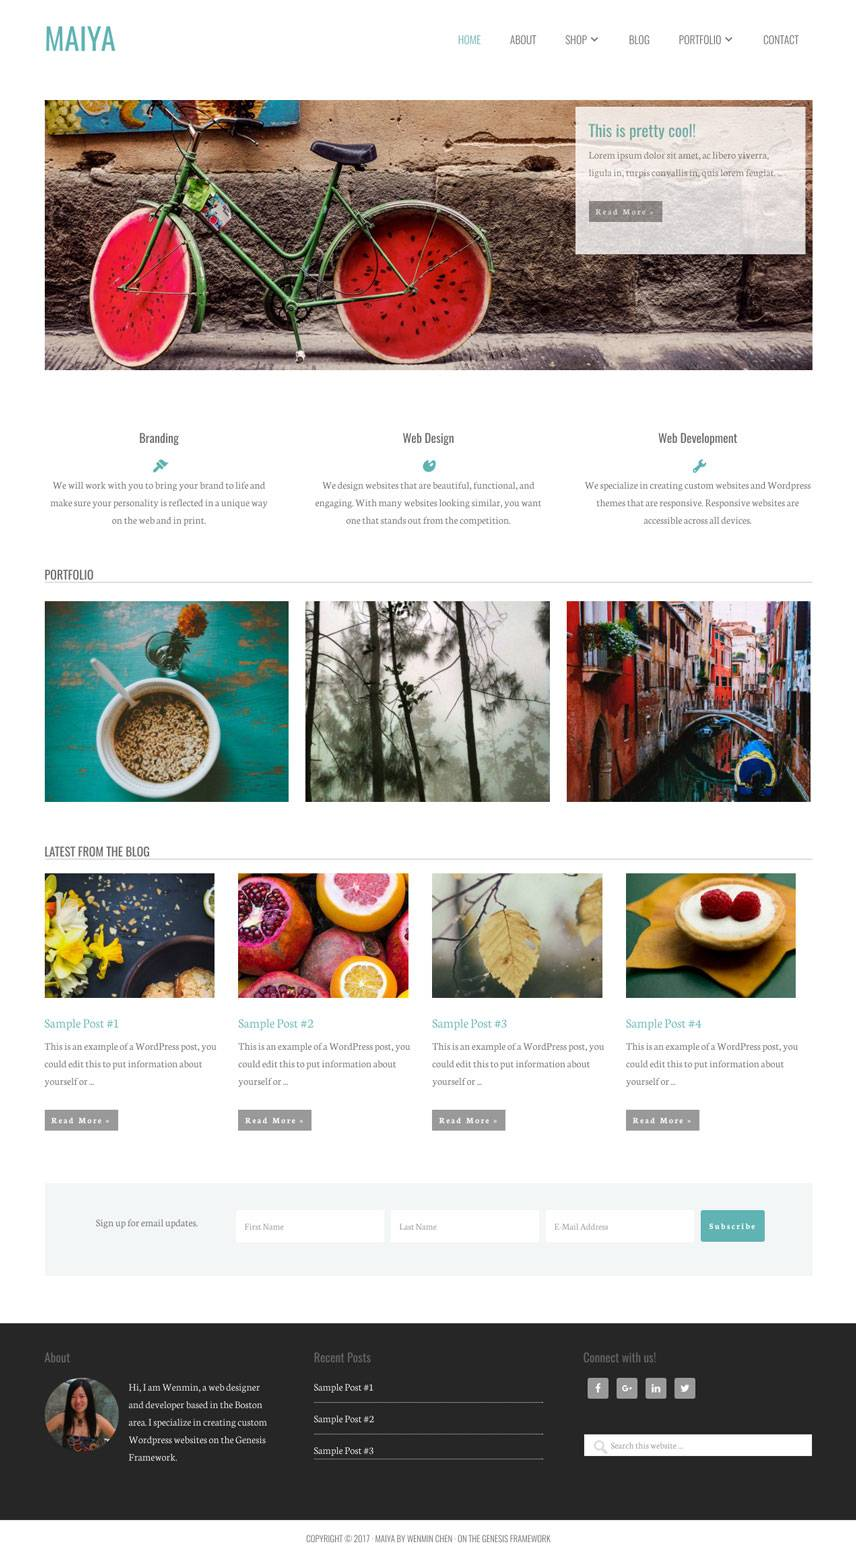 Maiya Theme - Home | by Wenmin Chen, Boston freelance web developer & designer